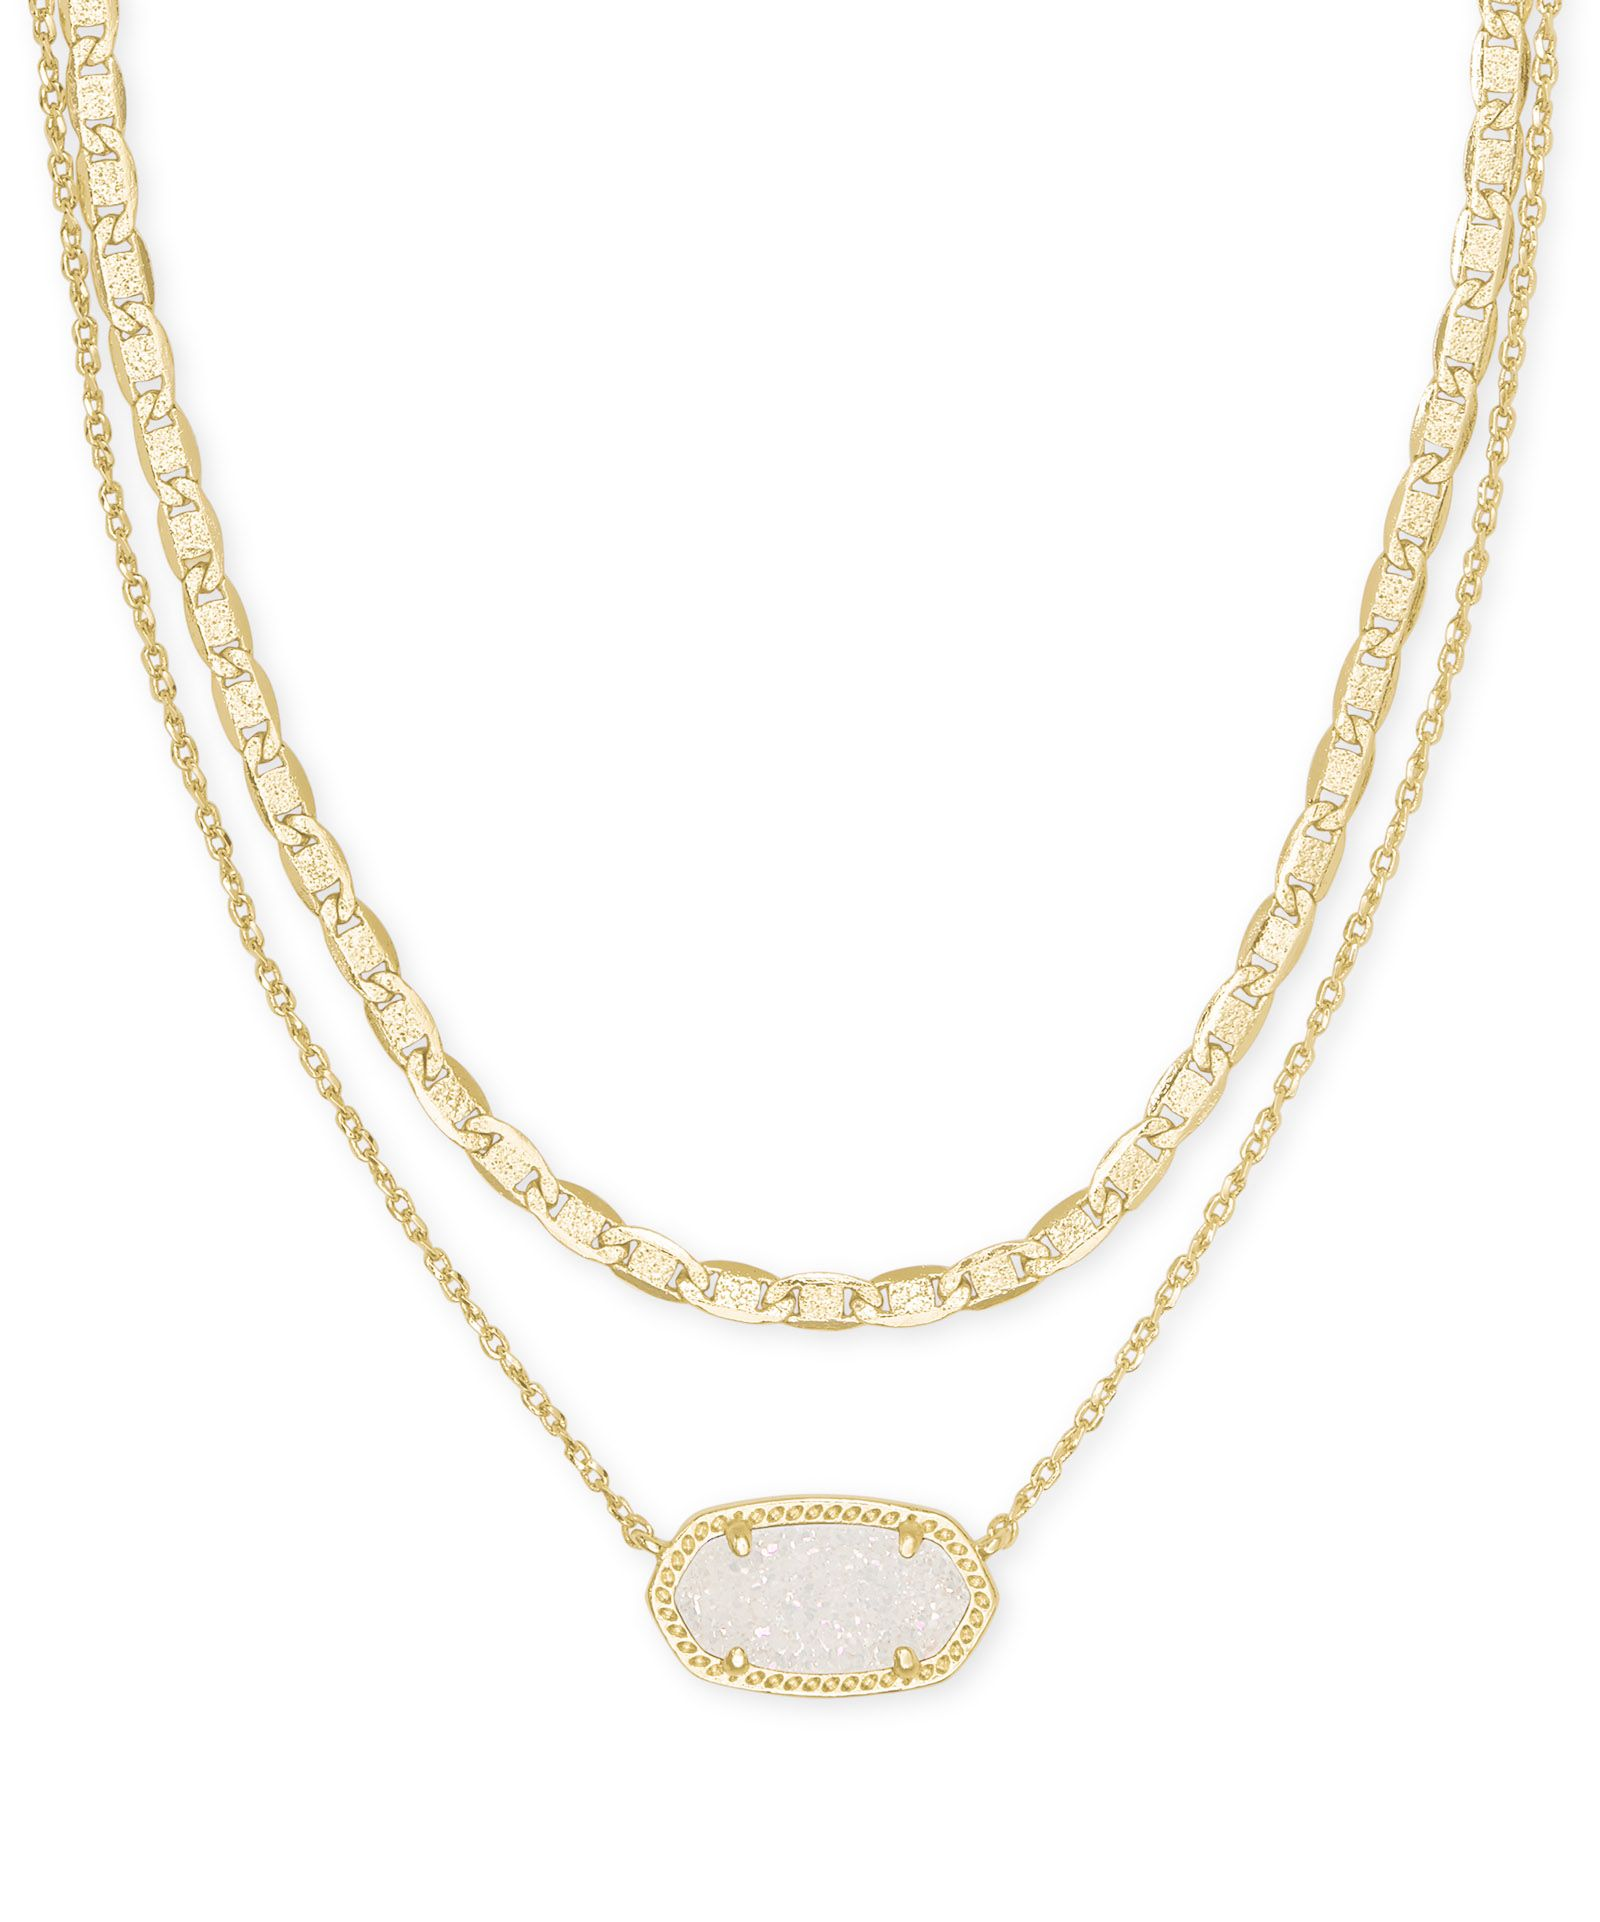 Elisa Gold Multi Strand Necklace in Iridescent Drusy in